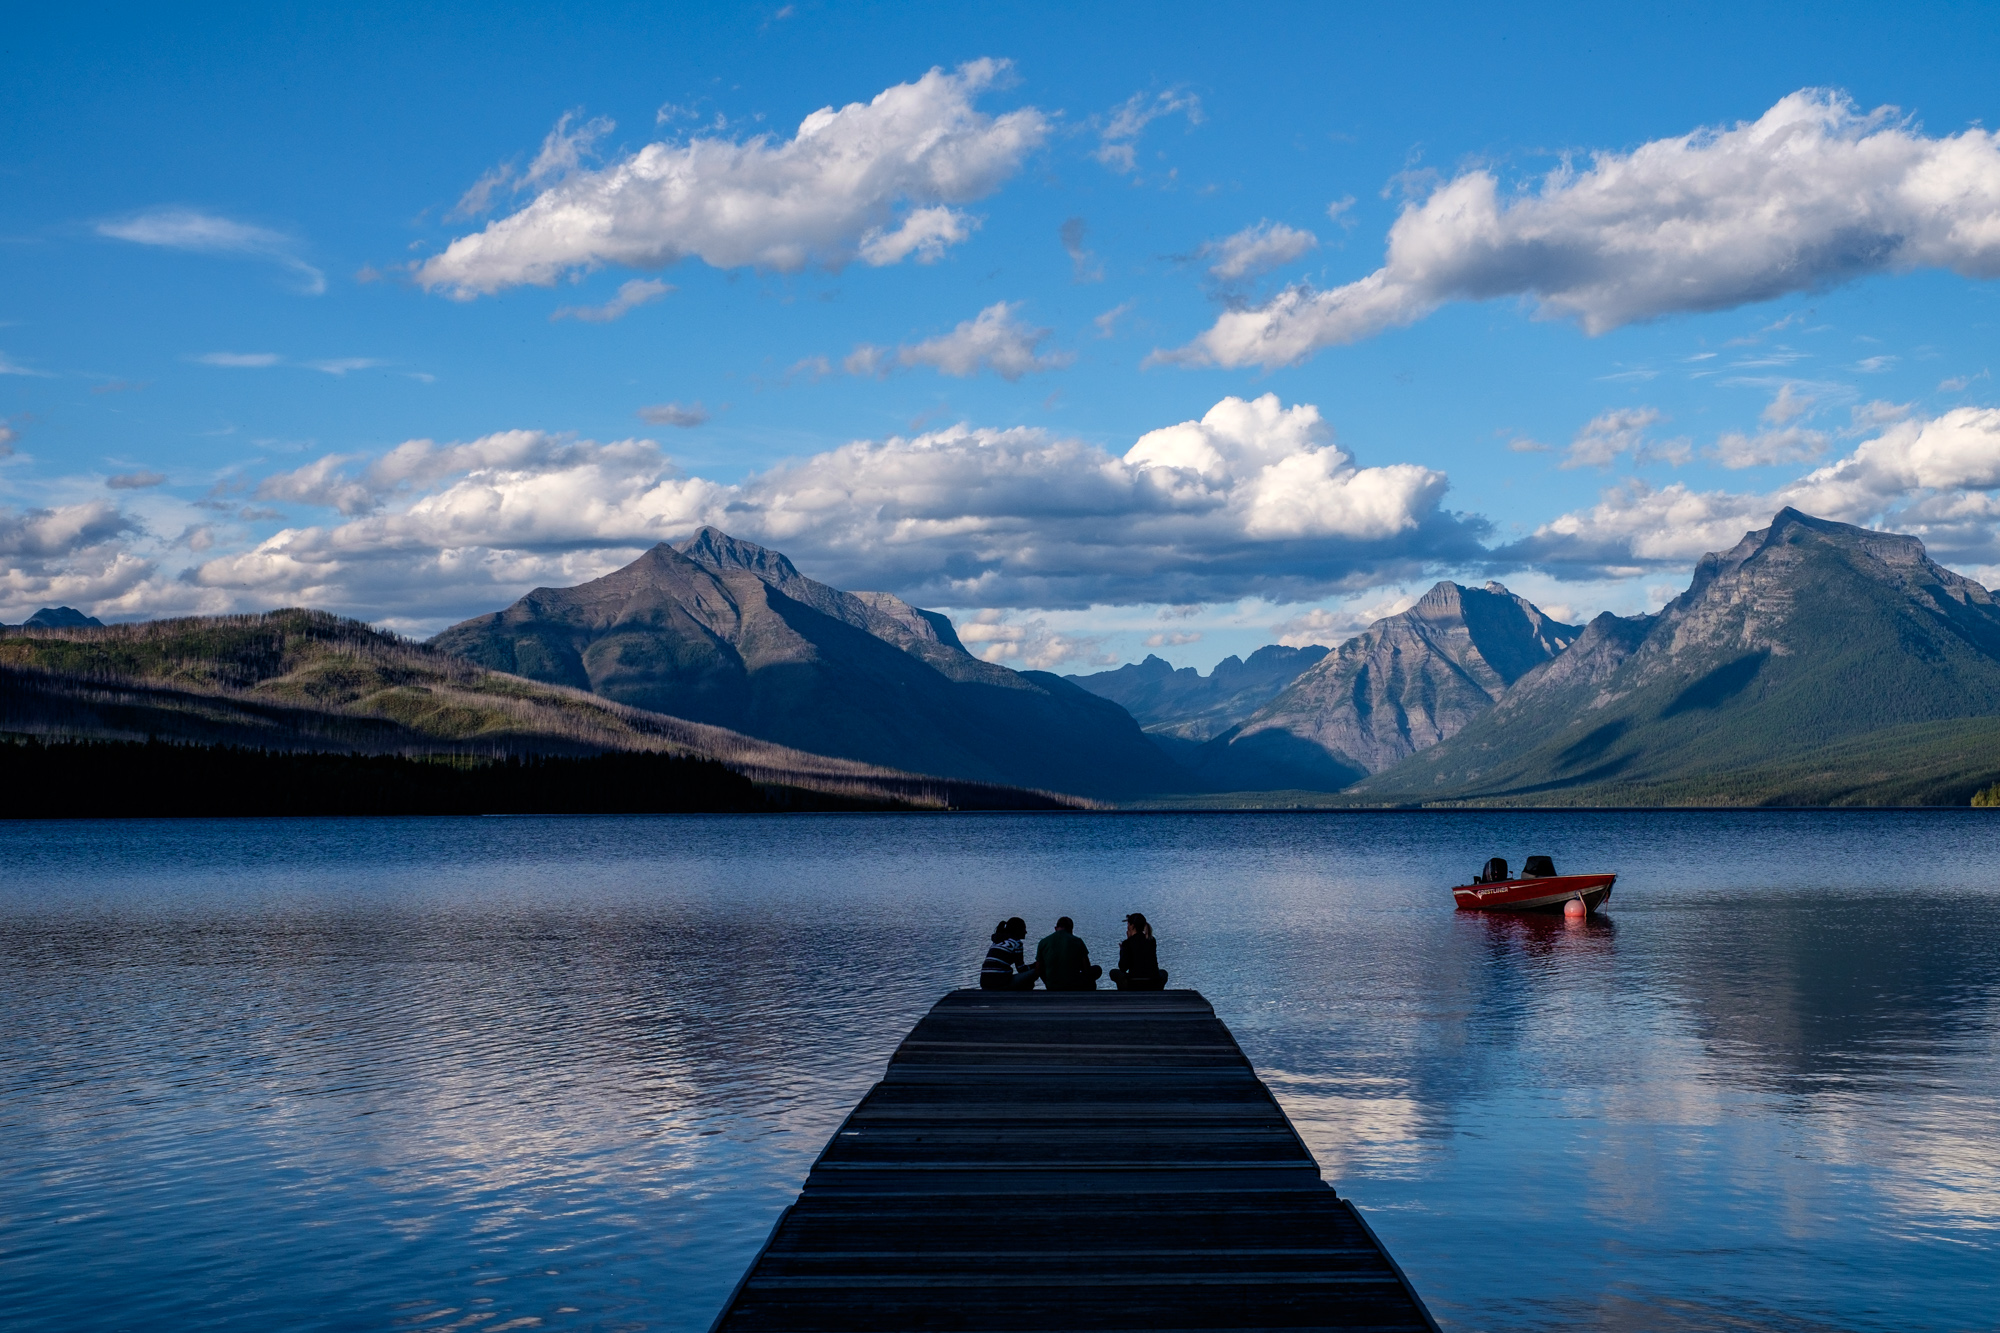 Some friends hanging out on the dock at Lake McDonald.